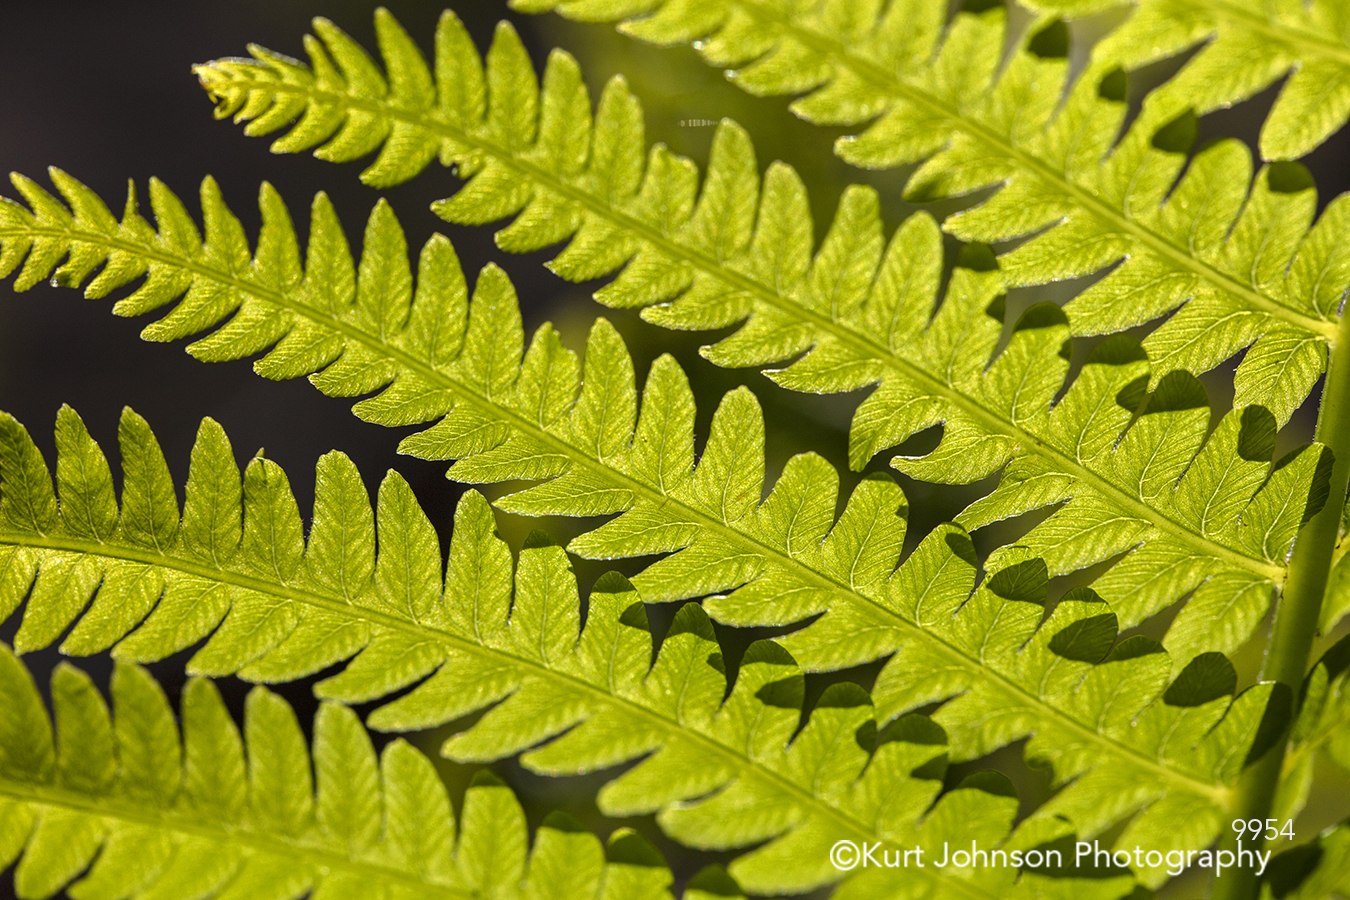 green leaves shadows light fern ferns plant close up detail